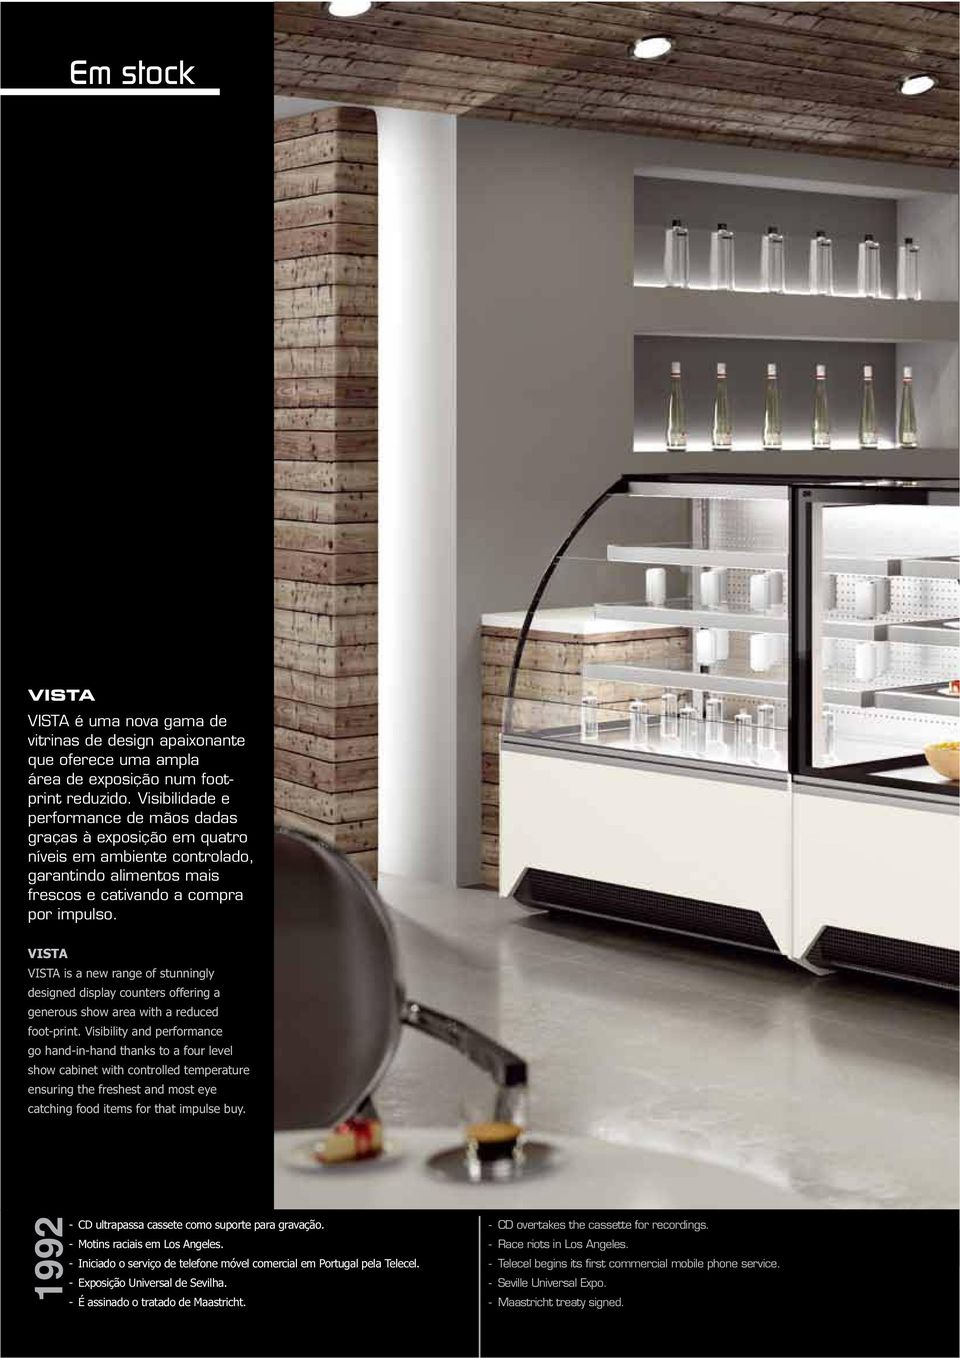 VISTA is a new range of stunningly designed display counters offering a generous show area with a reduced foot-print.